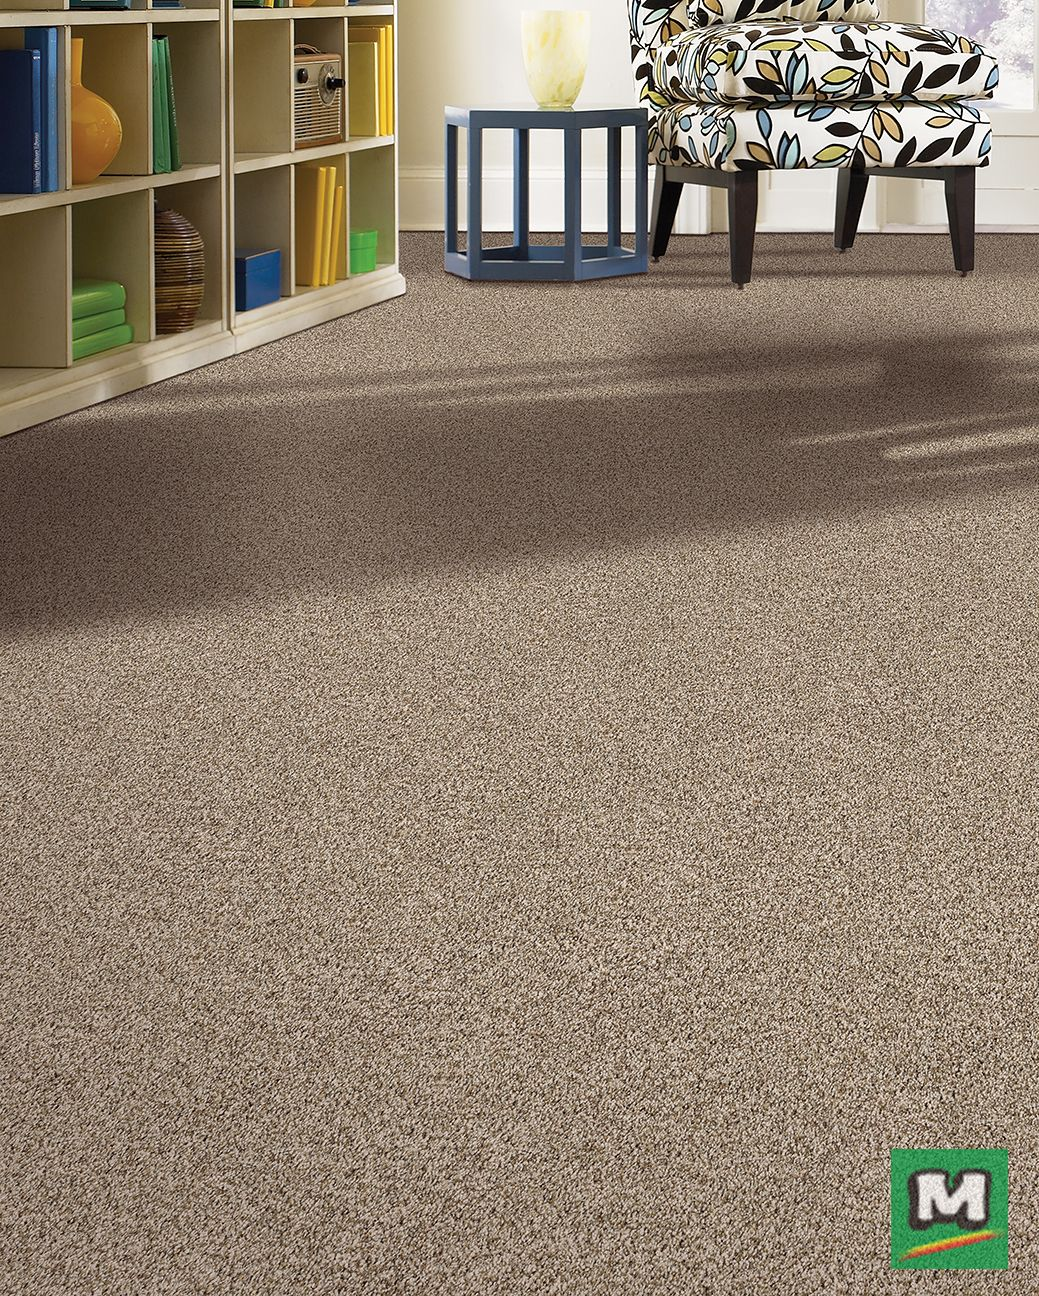 For A Picture Perfect Playroom Try Mohawk Untouchable Frieze Carpet It S Not